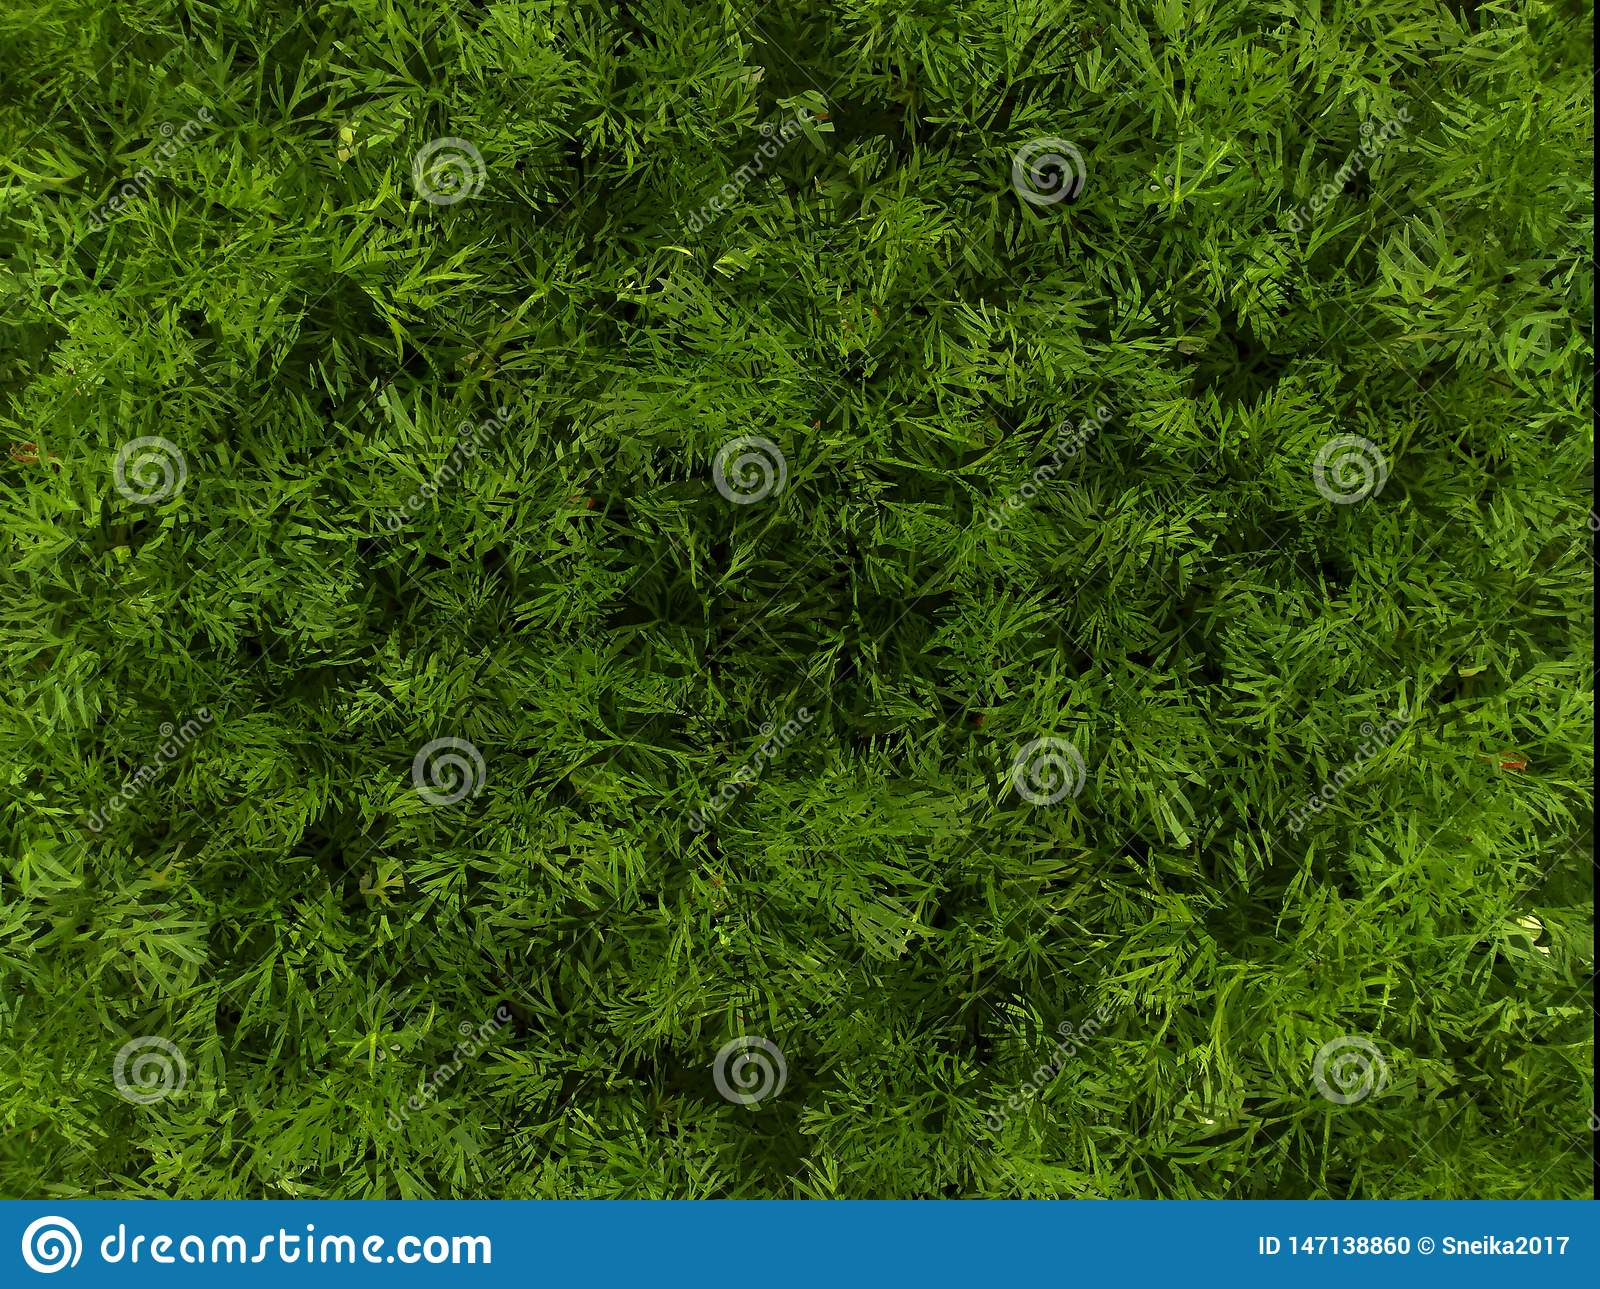 Green background based on photos of spring grass.